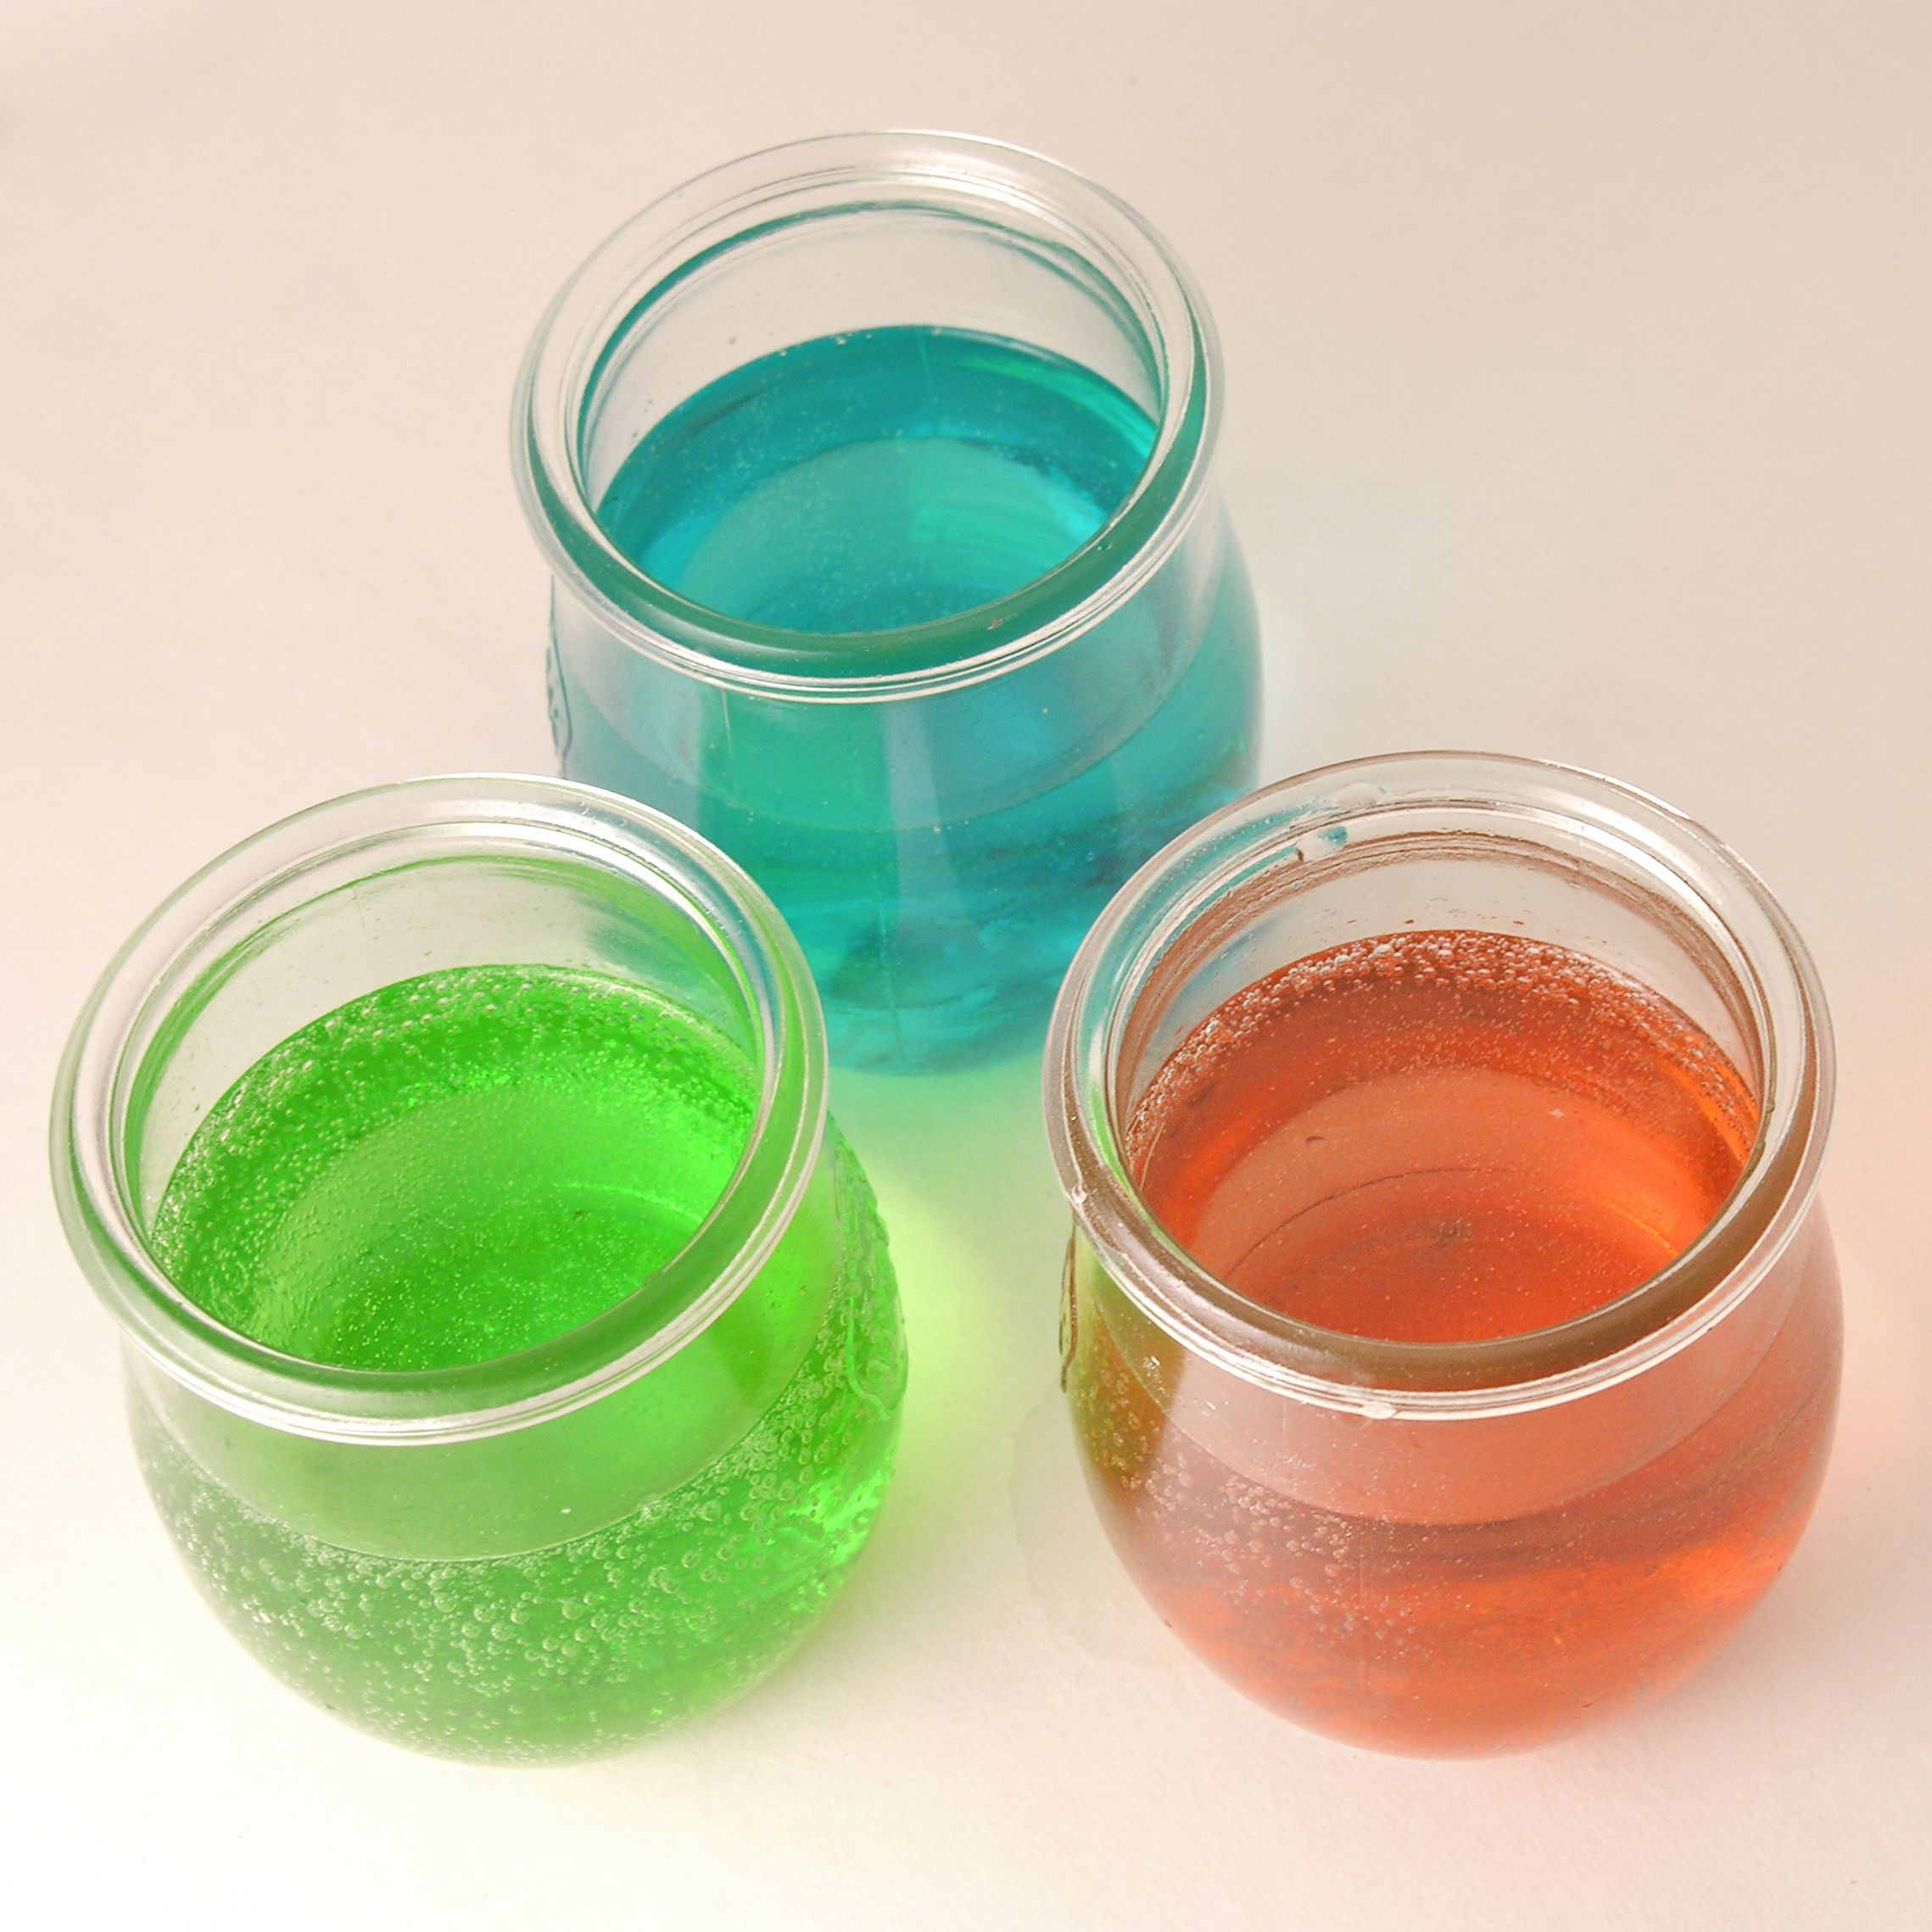 Cotton Candy Drink For Kids, Easy & Cute Idea That The